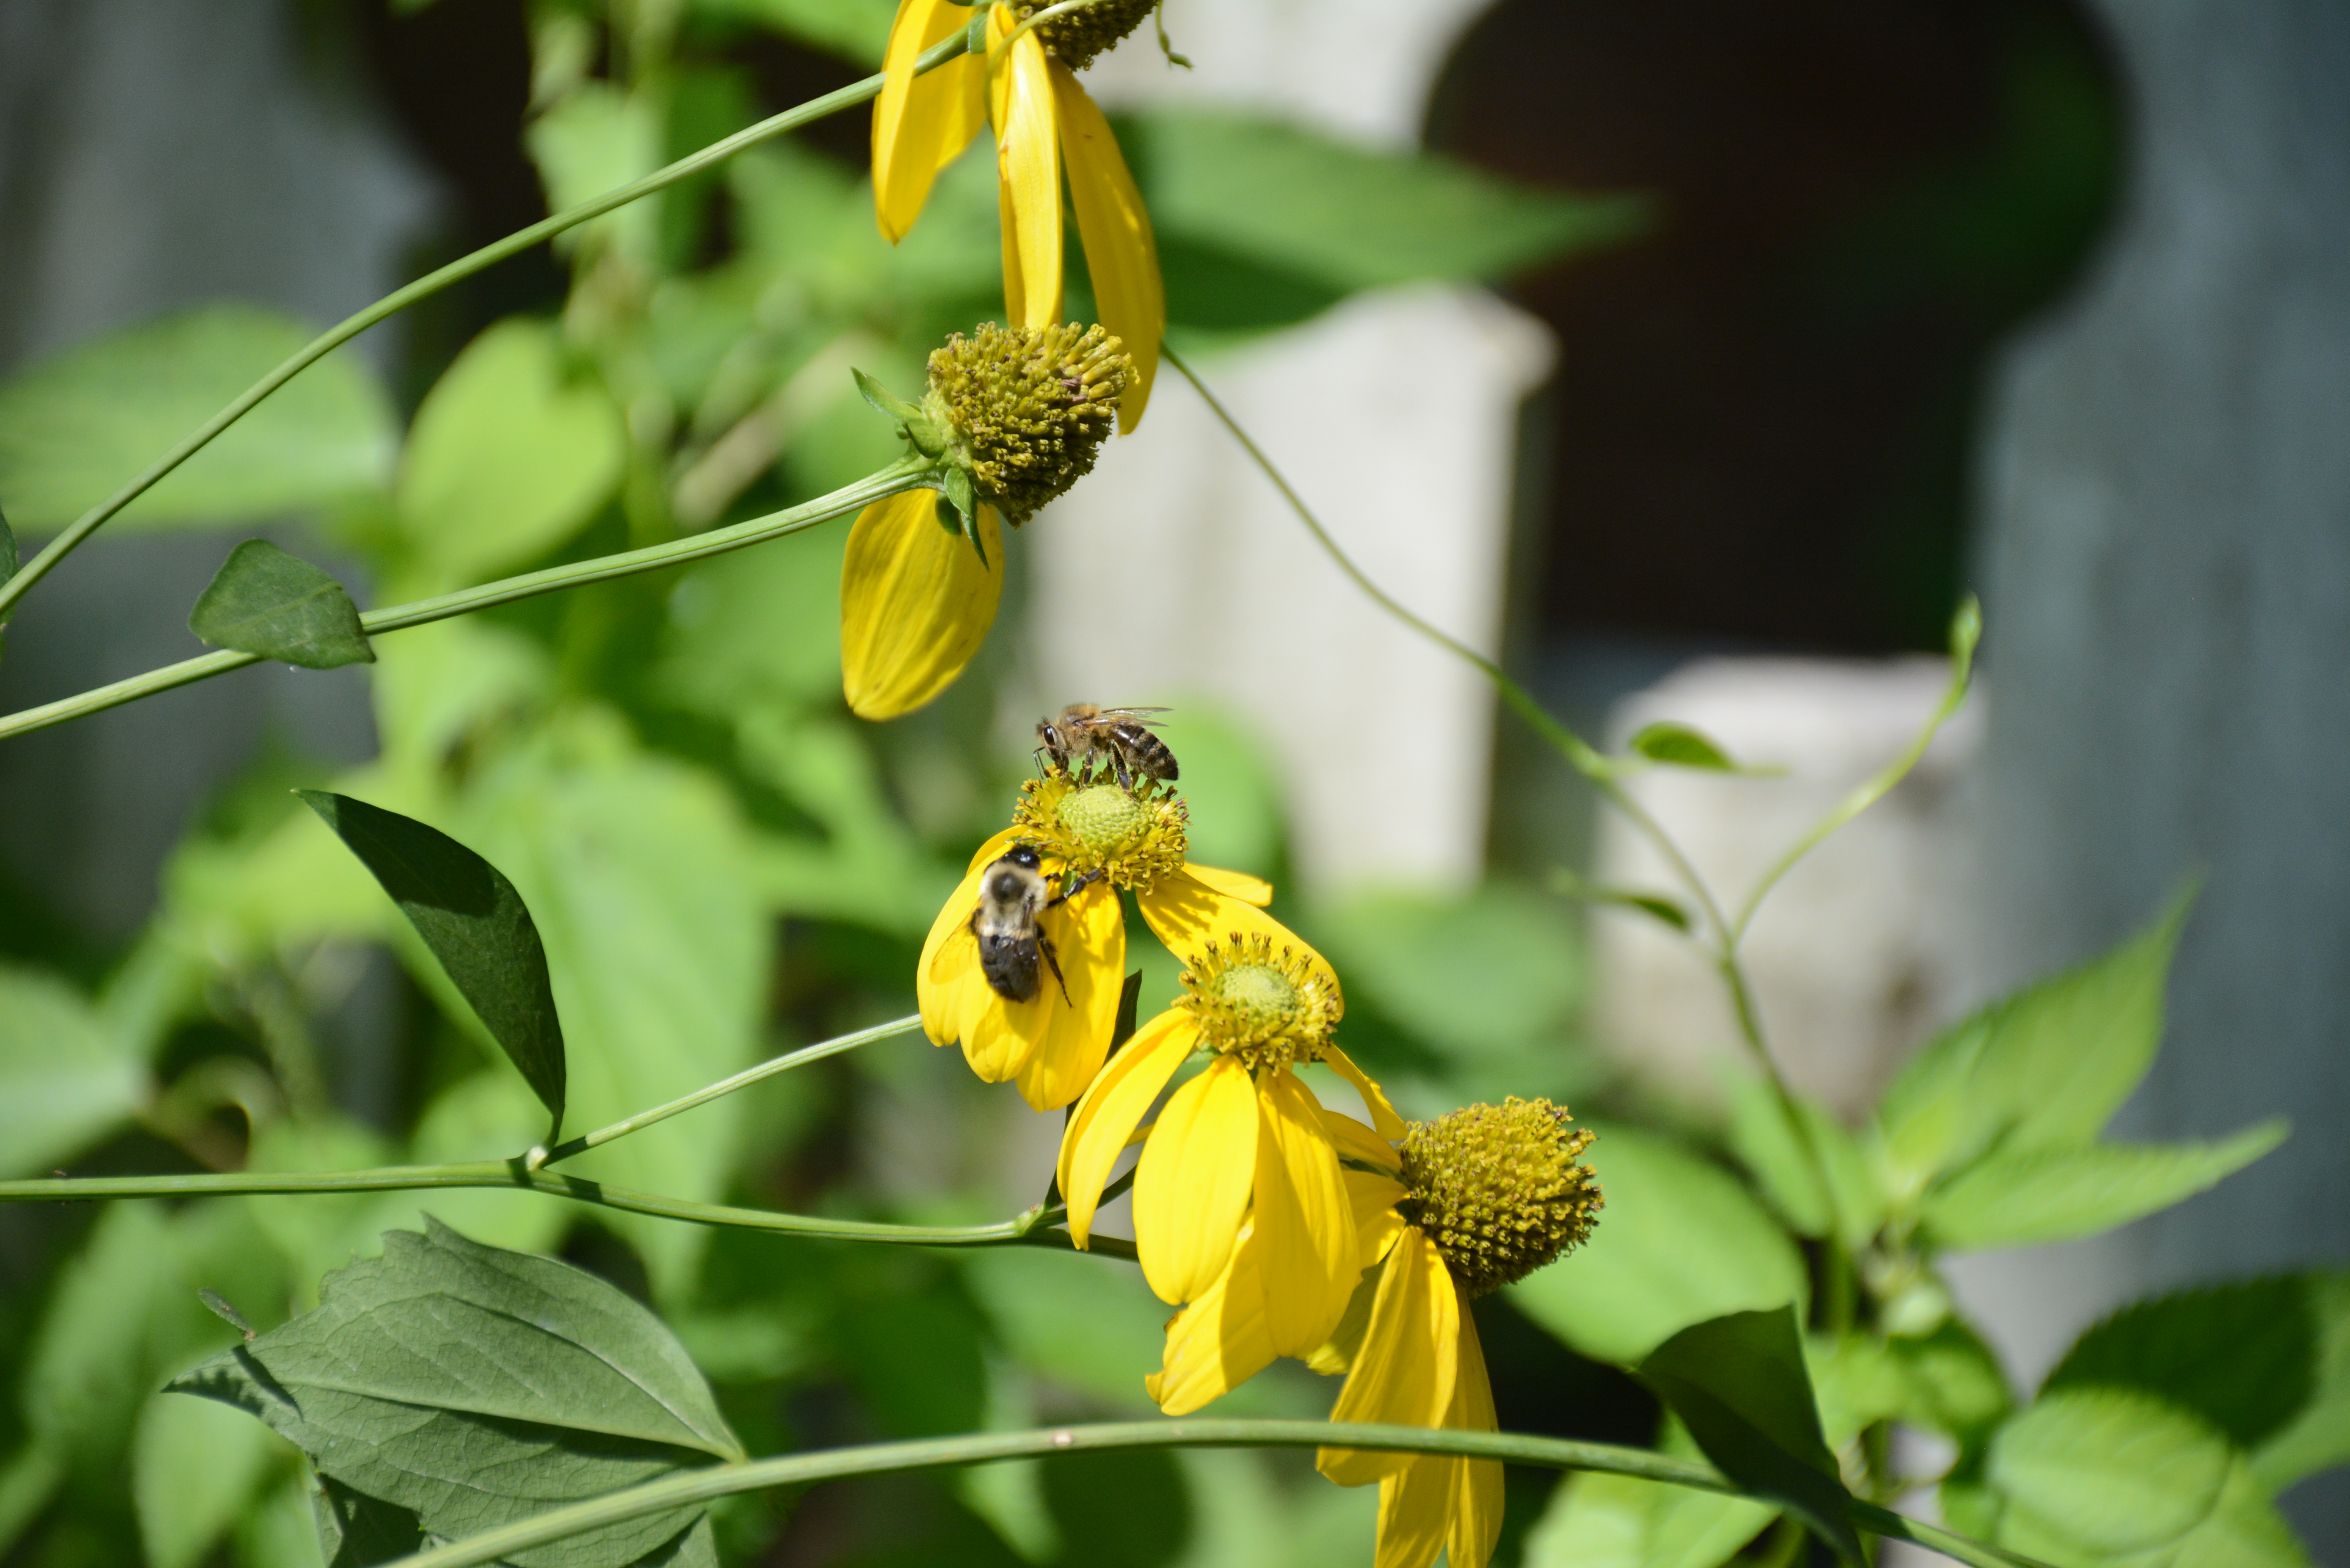 A closeup of several yellow flowers. A honeybee and a native bumblebee have landed on one of the flowers.